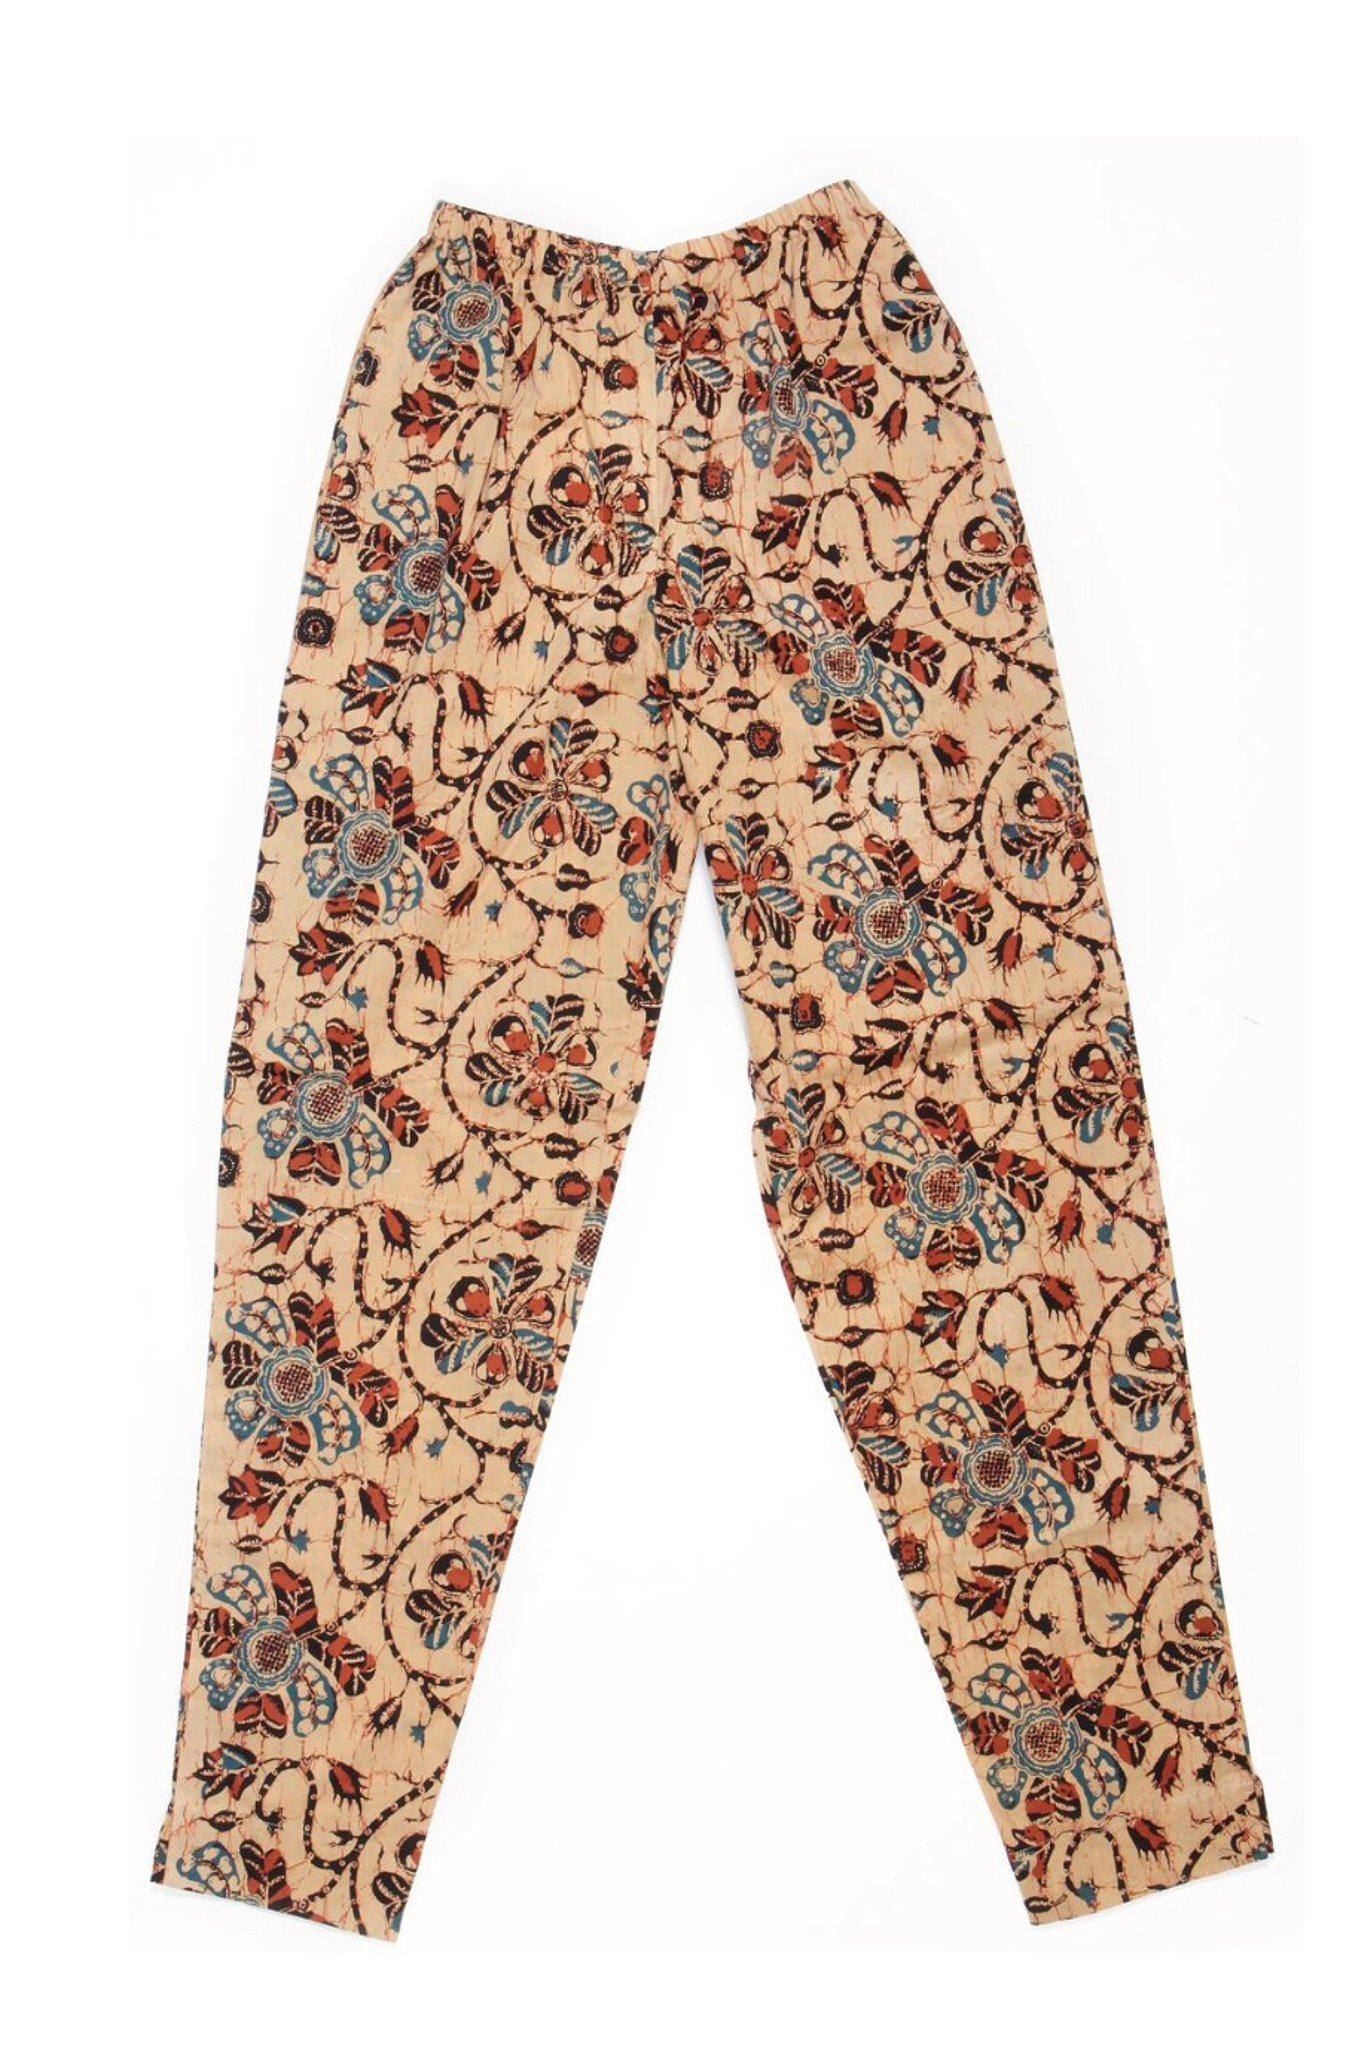 BATIK Trousers Beige - Komodo Fashion